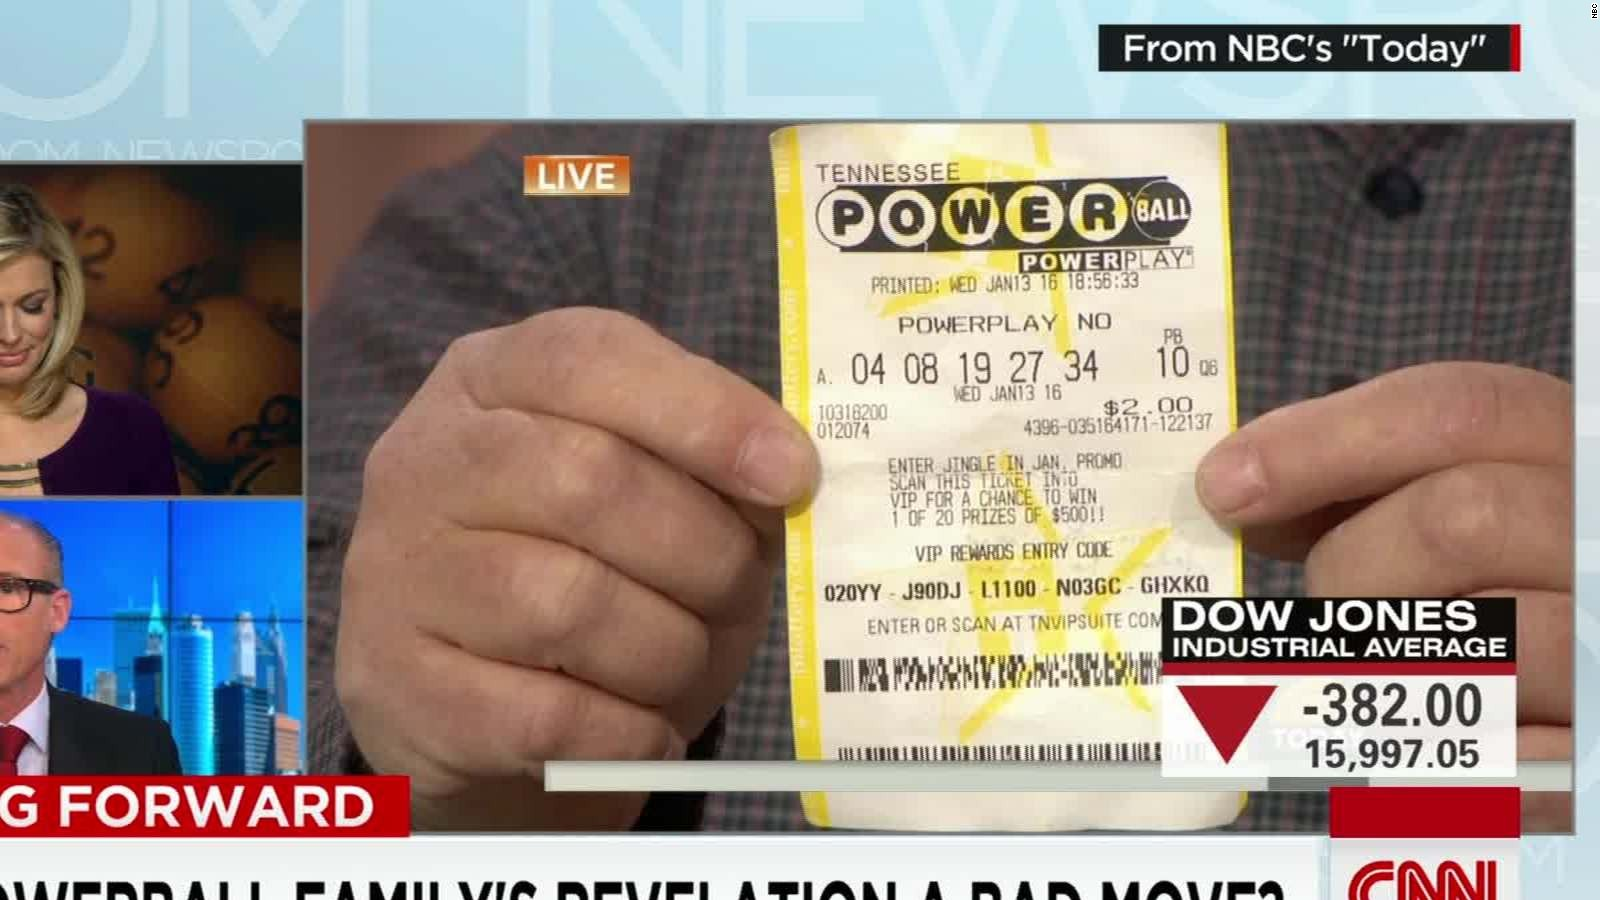 Mega Millions and Powerball jackpots combined are now over $1 2